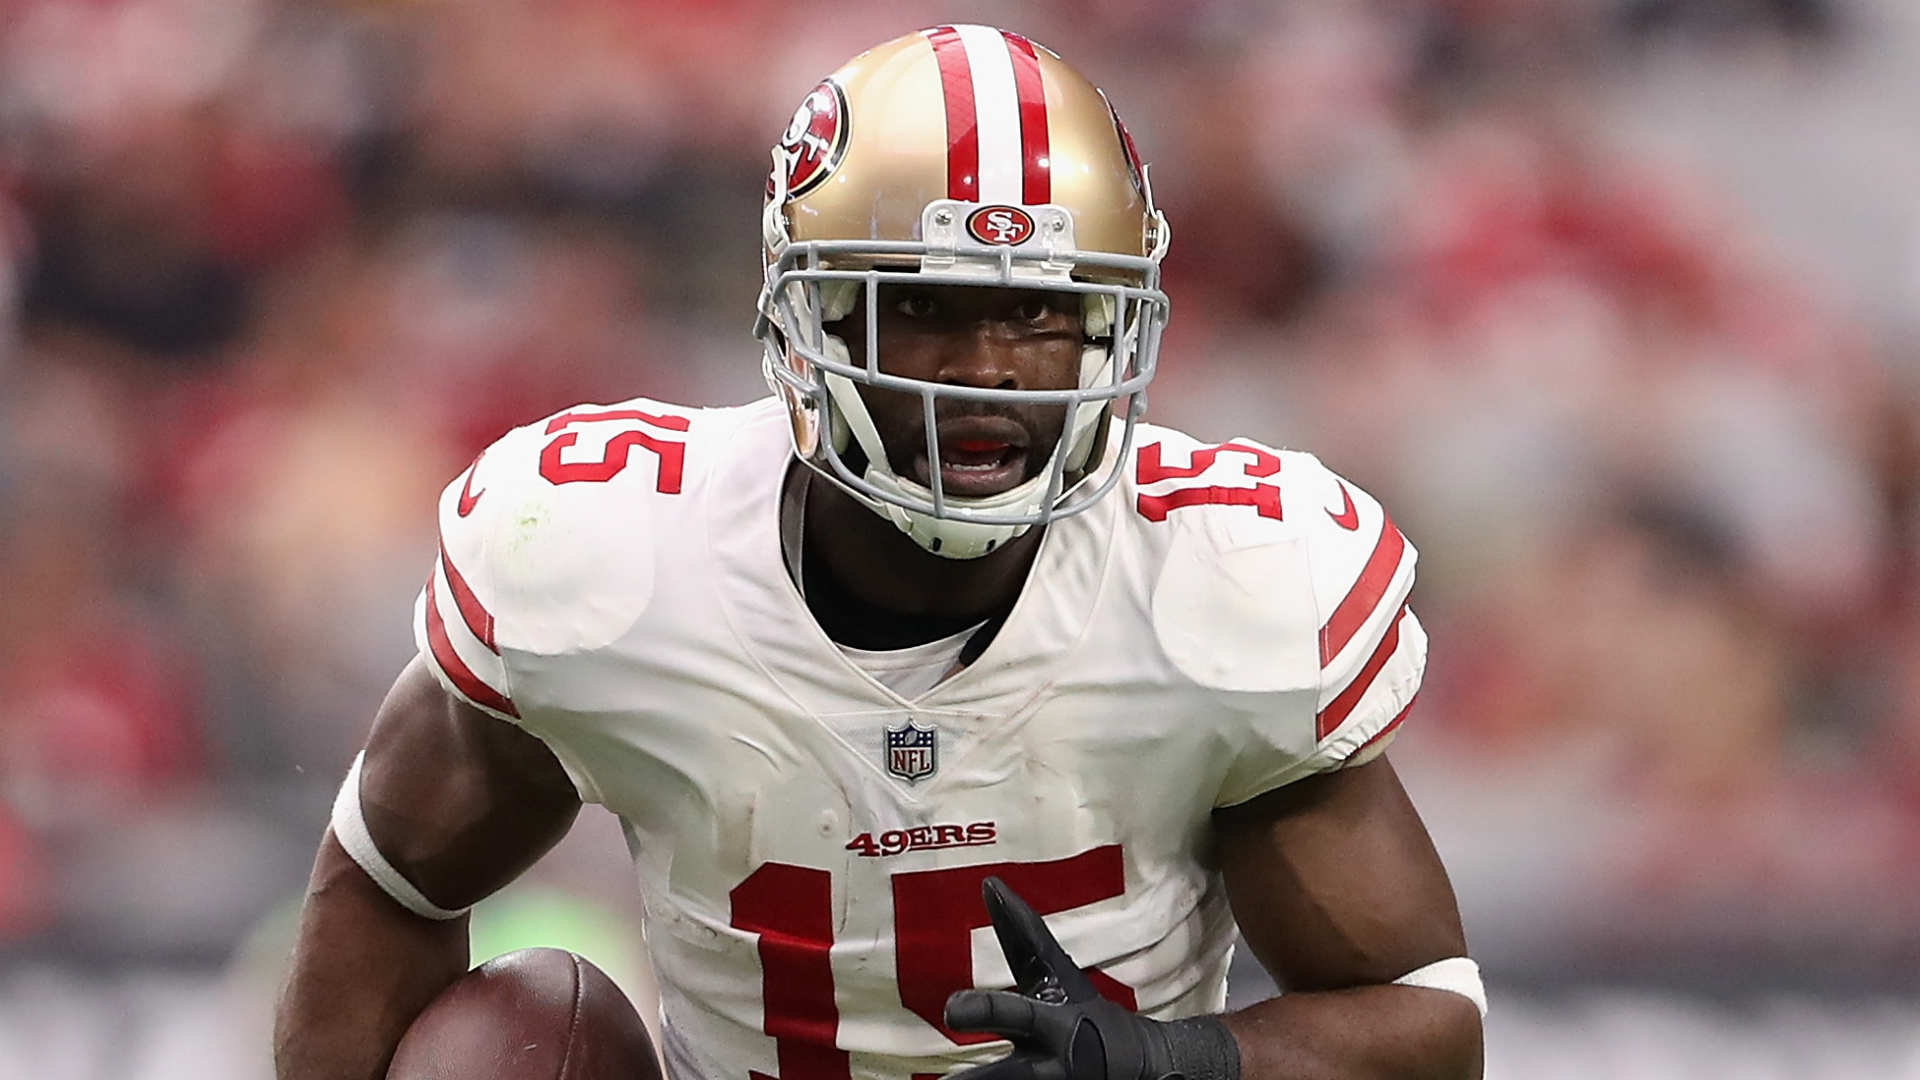 49ers decline to pick up receiver Pierre Garcon's option, report says